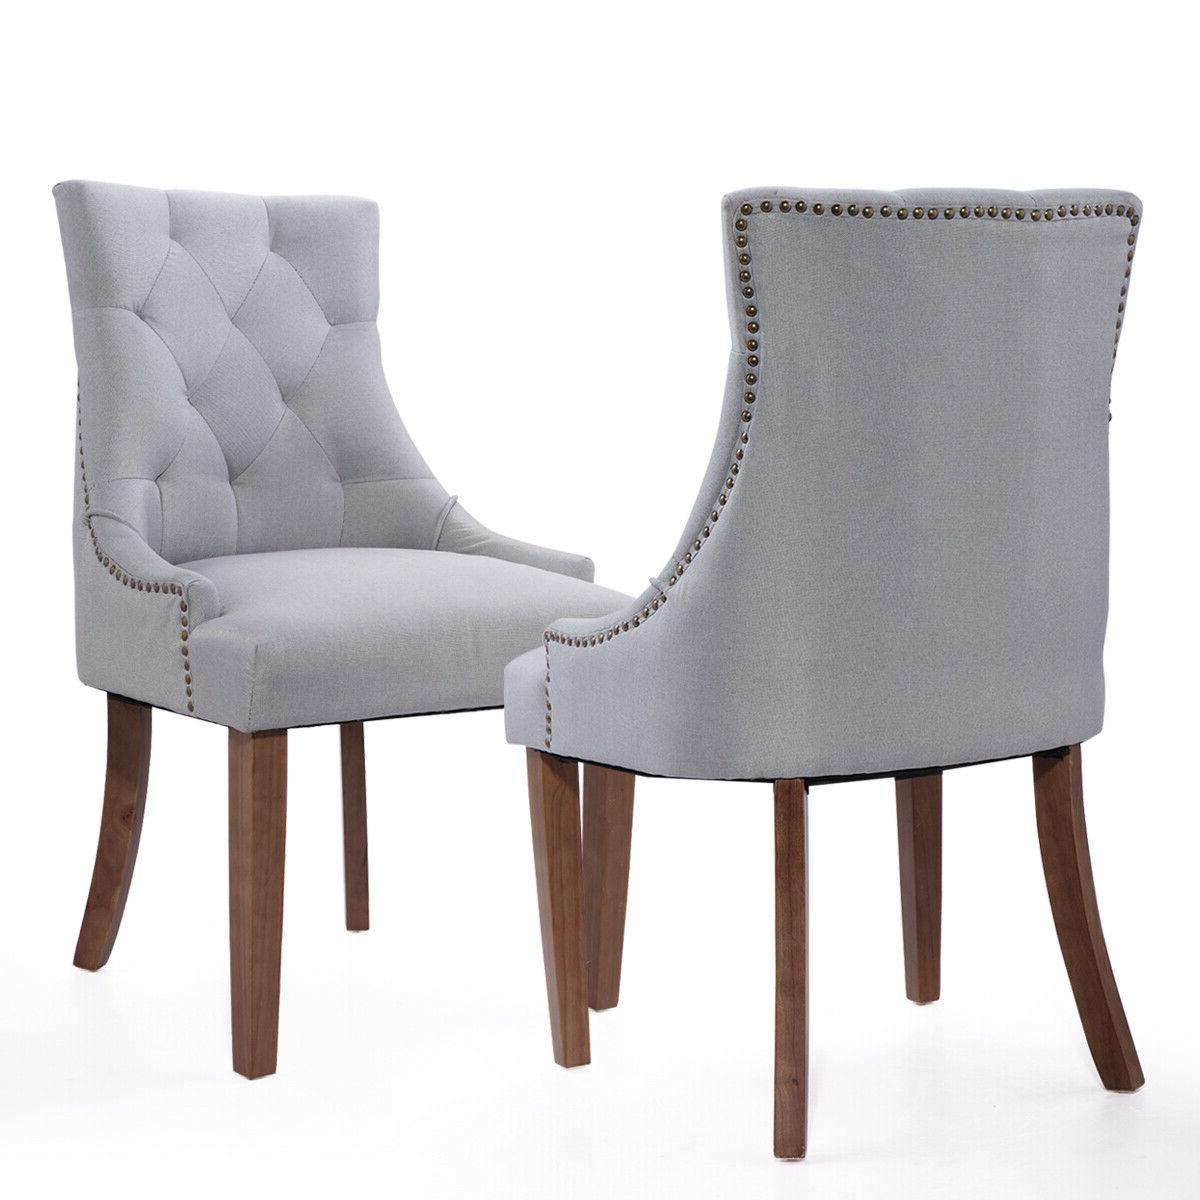 Set Dining Chairs with Rubber Legs